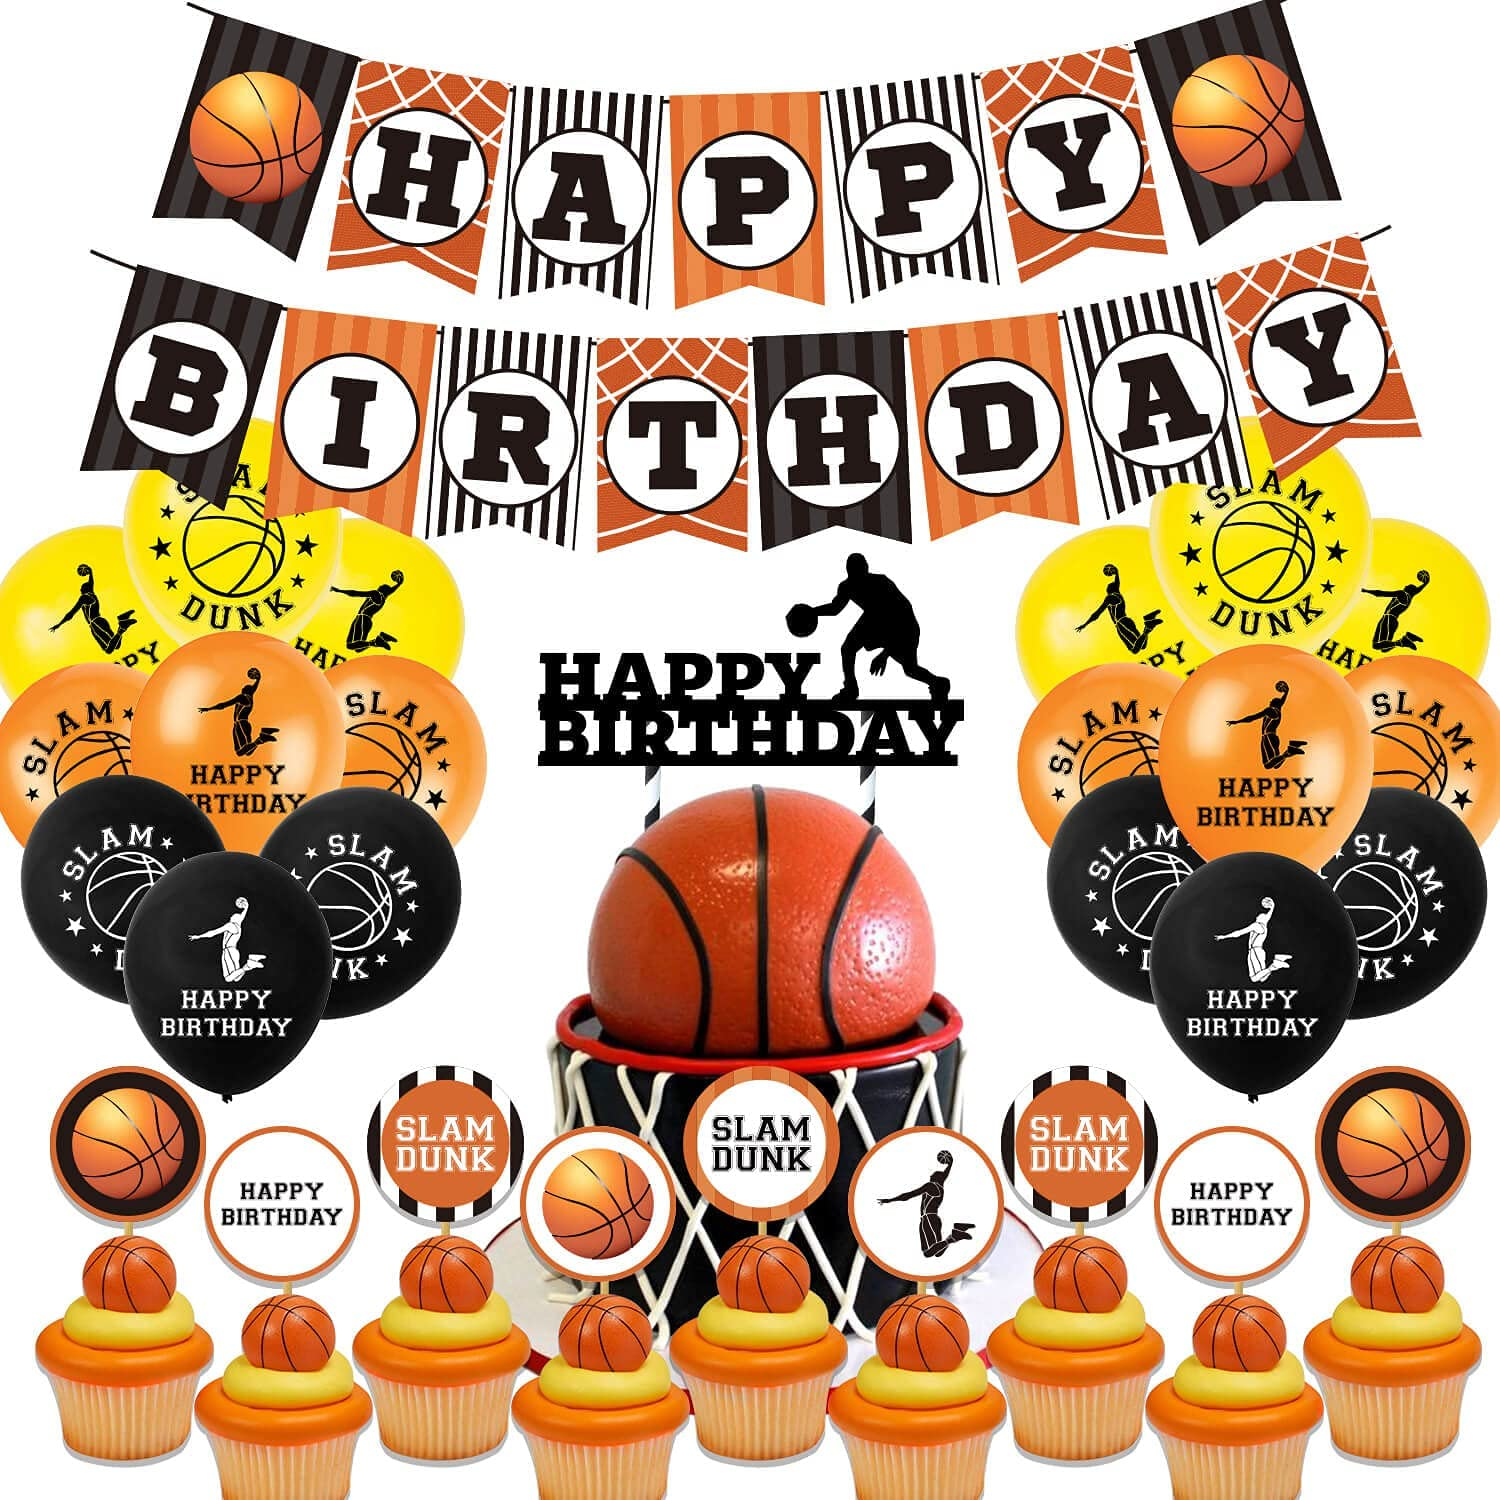 Basketball Party Decorations Supplies, AHQ Basketball Theme Birthday Party Decor with Banner, Balloons, Cupcake Toppers, Slam Dunk for Kids, Boys, Girls, Teenagers